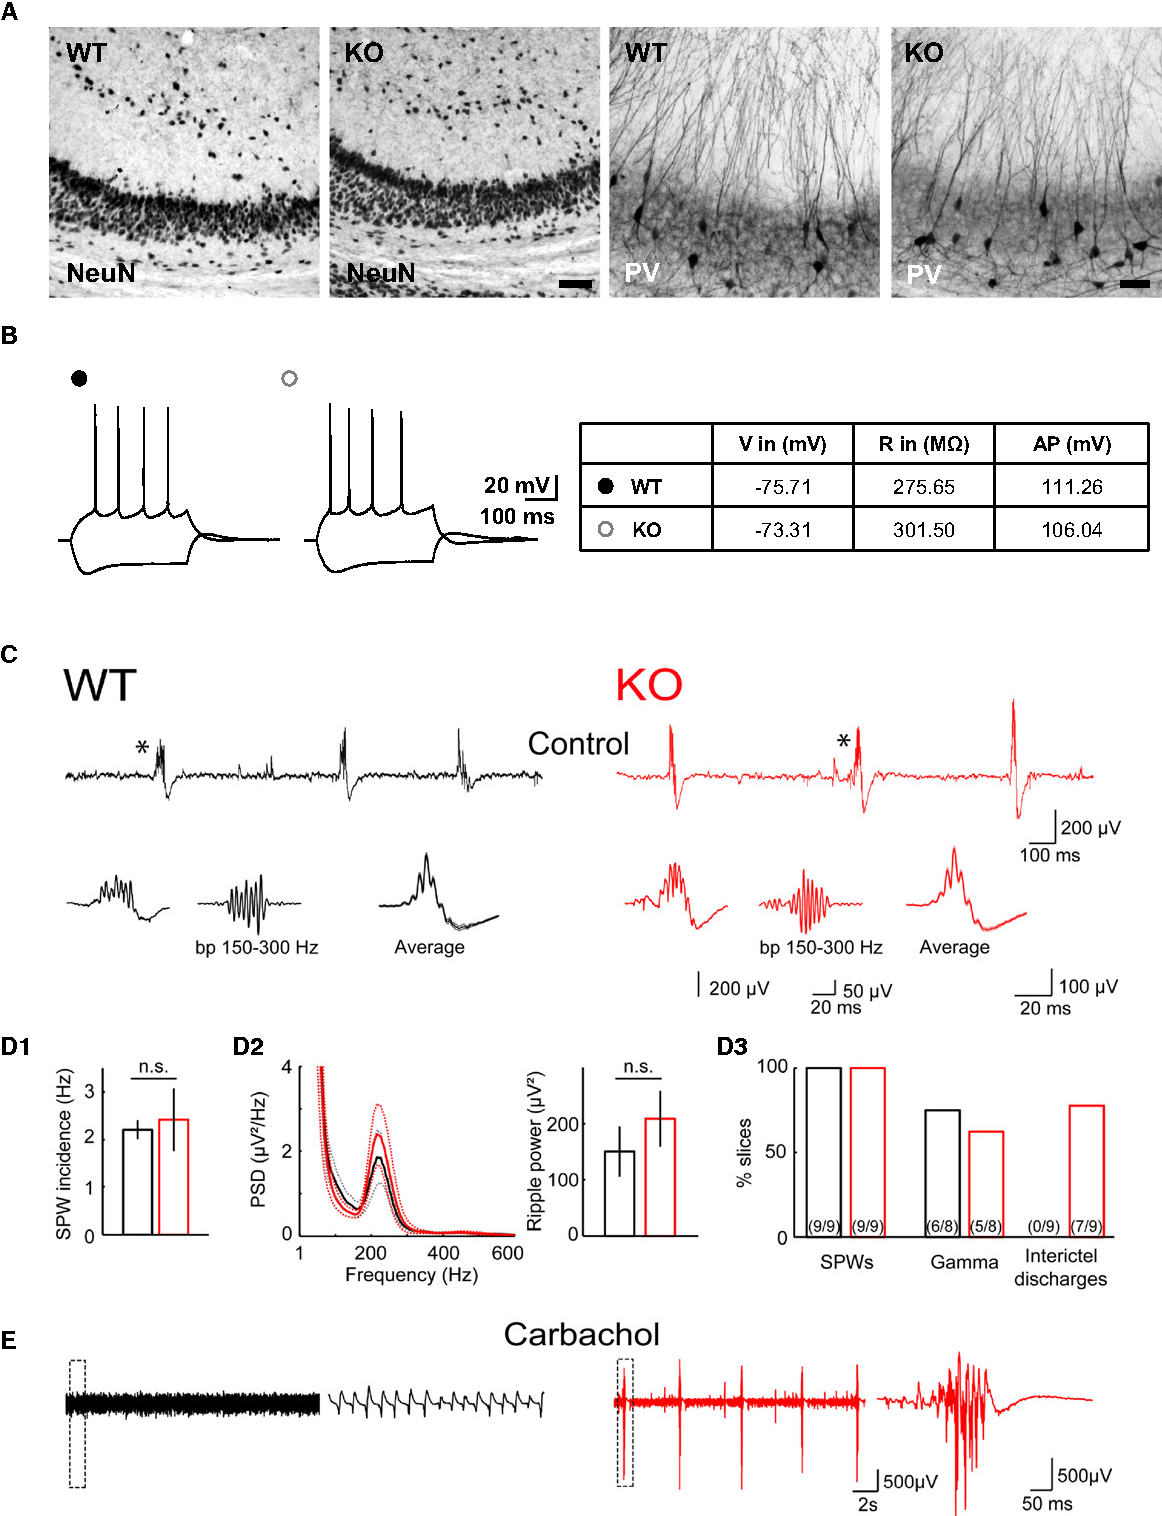 Figure 3. No Evident Structural Changes, but Pathological Network Properties in Hippocampal Slices